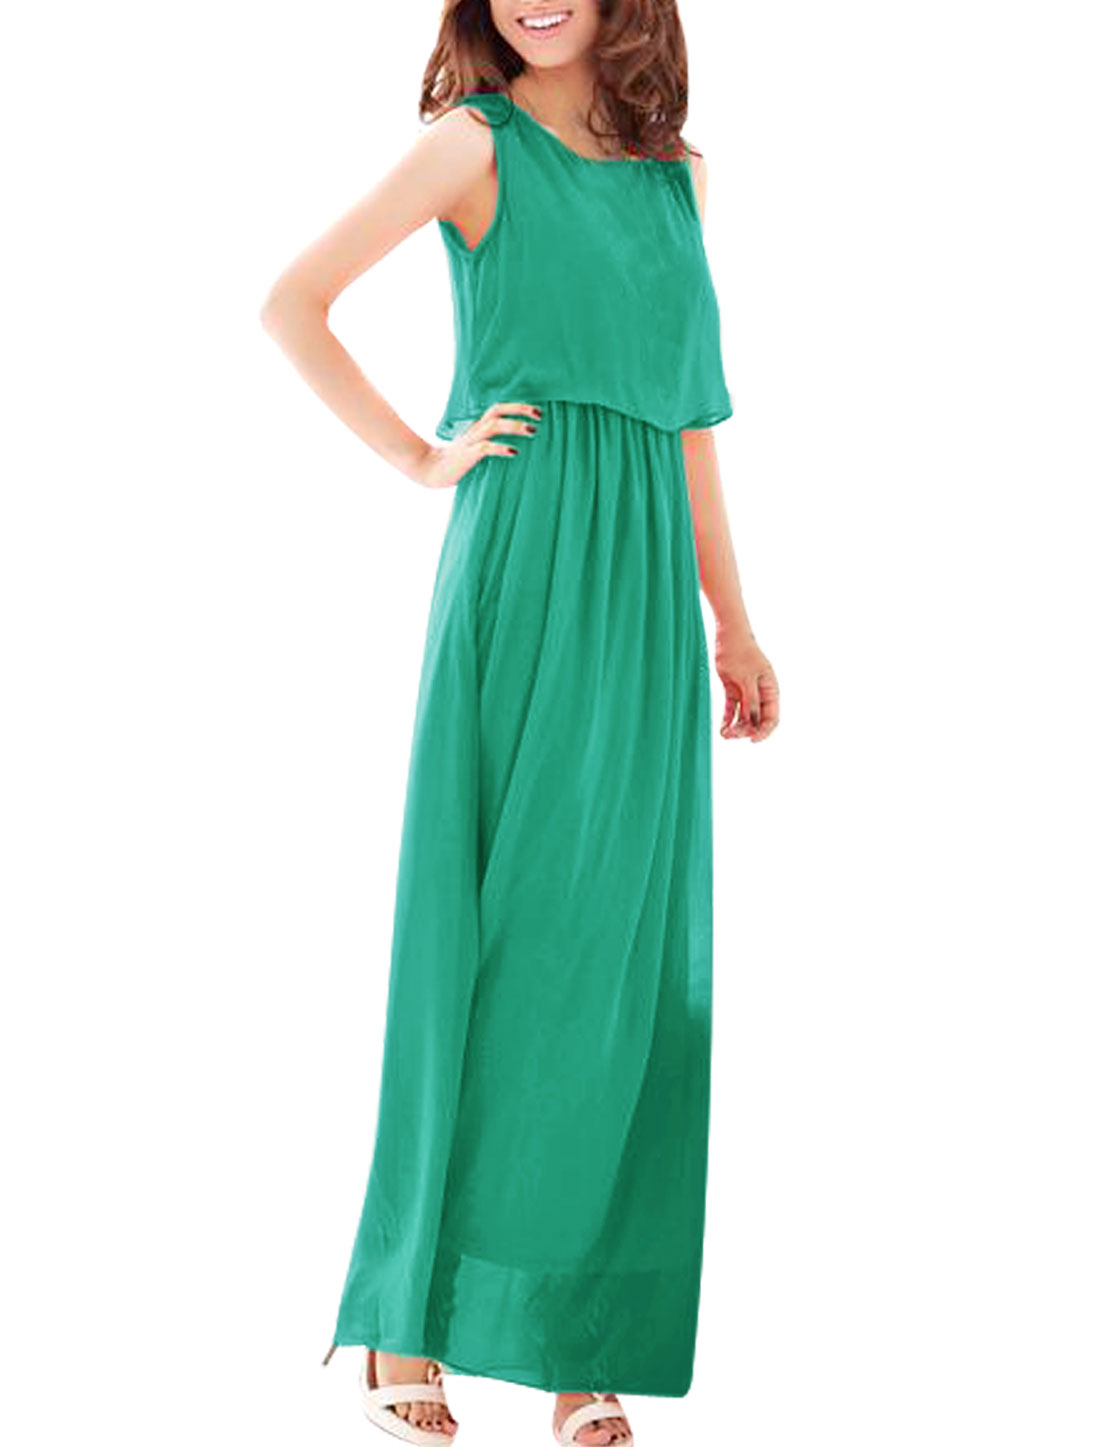 Lady Pretty Pure Sea Green Splice Design Elastic Waist Long Dress XL